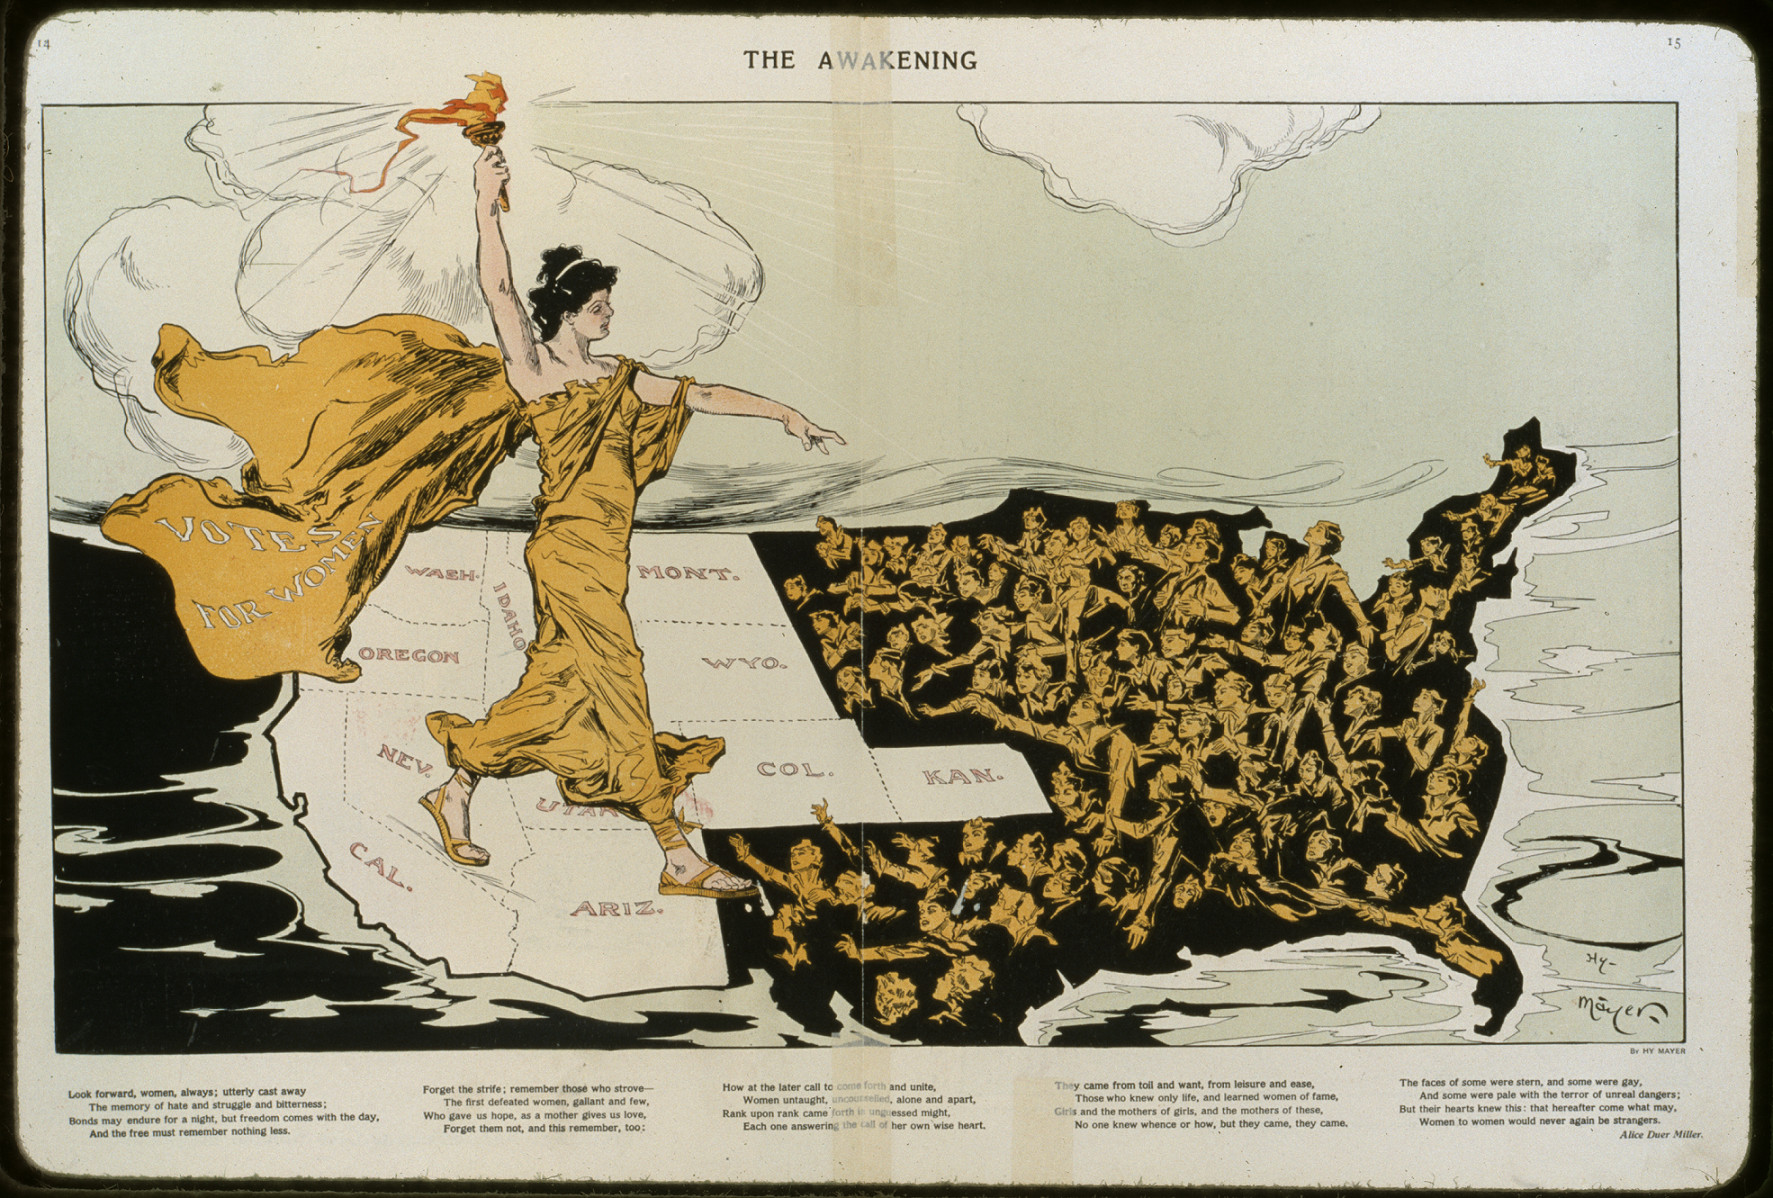 The Awakening, illustration by Henry Mayer, 1915. Image links to item on the Library of Congress website.